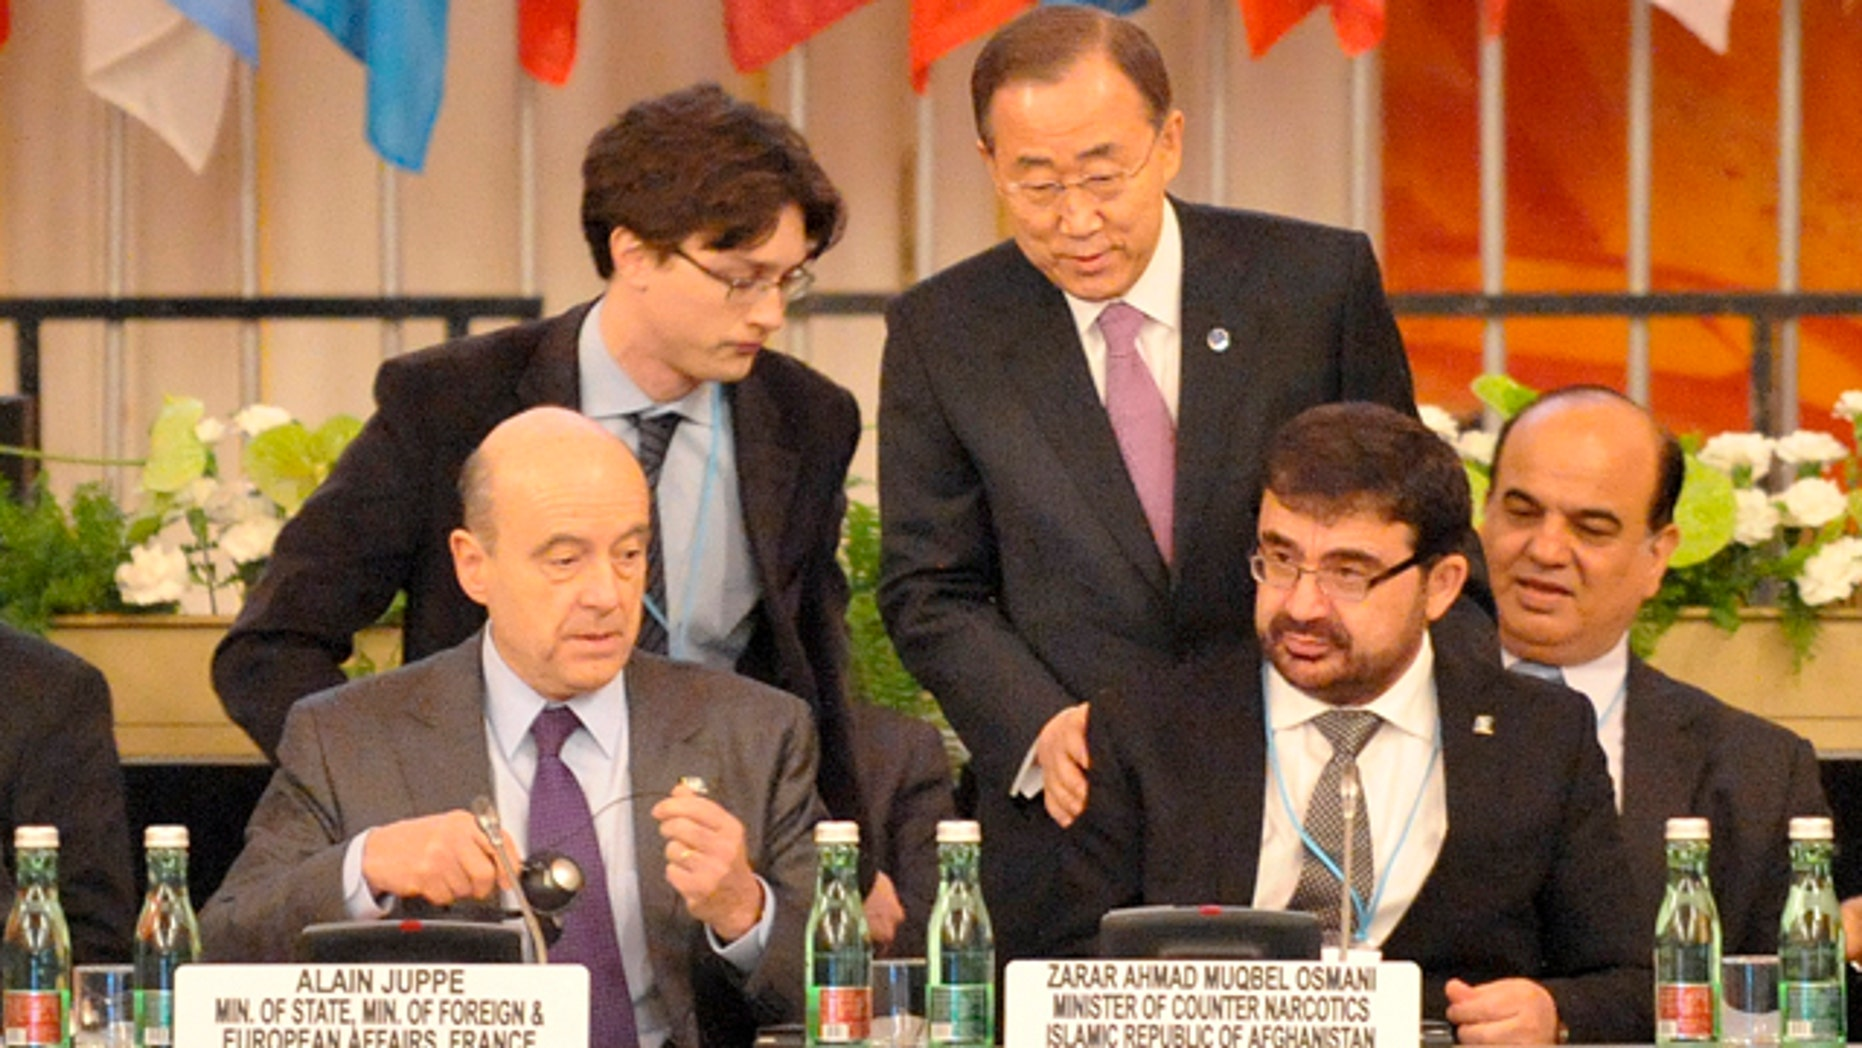 Thursday, Feb. 16, 2012- UN Secretary General Ban Ki-moon, center right, welcomes the Afghan Minister of Counter Narcotics Zarar Ahmed Muqbel Osmani, right, and French Foreign Minister Alain Juppe, left, at the third Ministerial Conference of the Paris Pact Partners in Vienna, Austria.